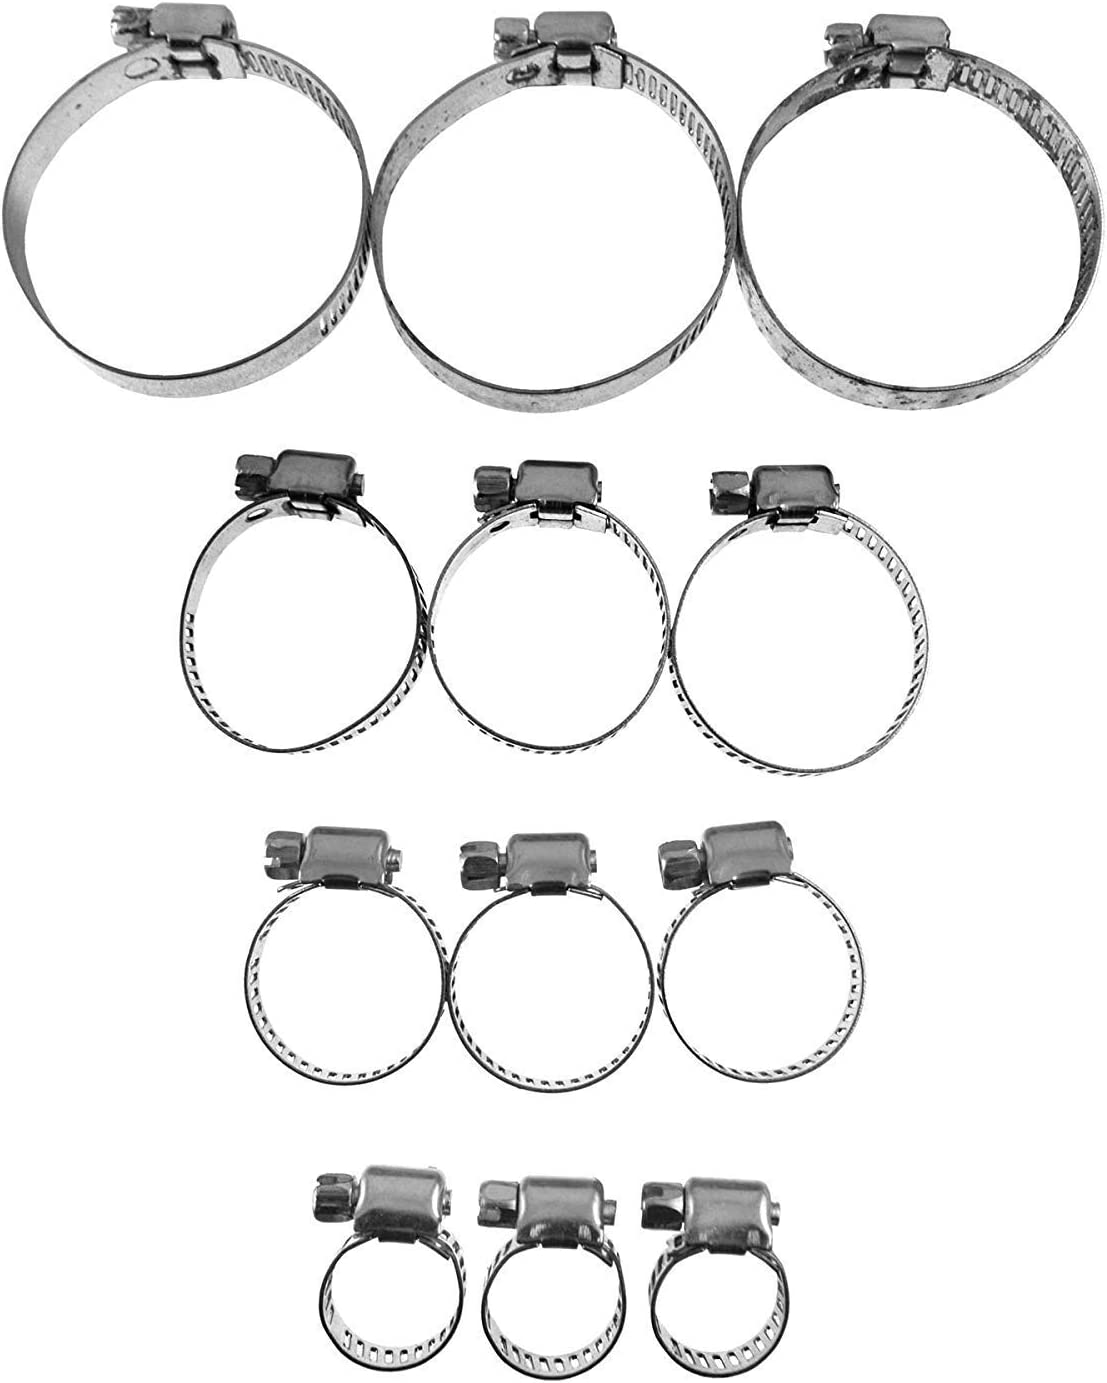 NEW 12 PC HOSE JUBILEE CLIPS CLAMPS ASSORTMENT SET 12PC 6 MM TO 51 MM CLIP KIT PACK 6MM TO 51MM